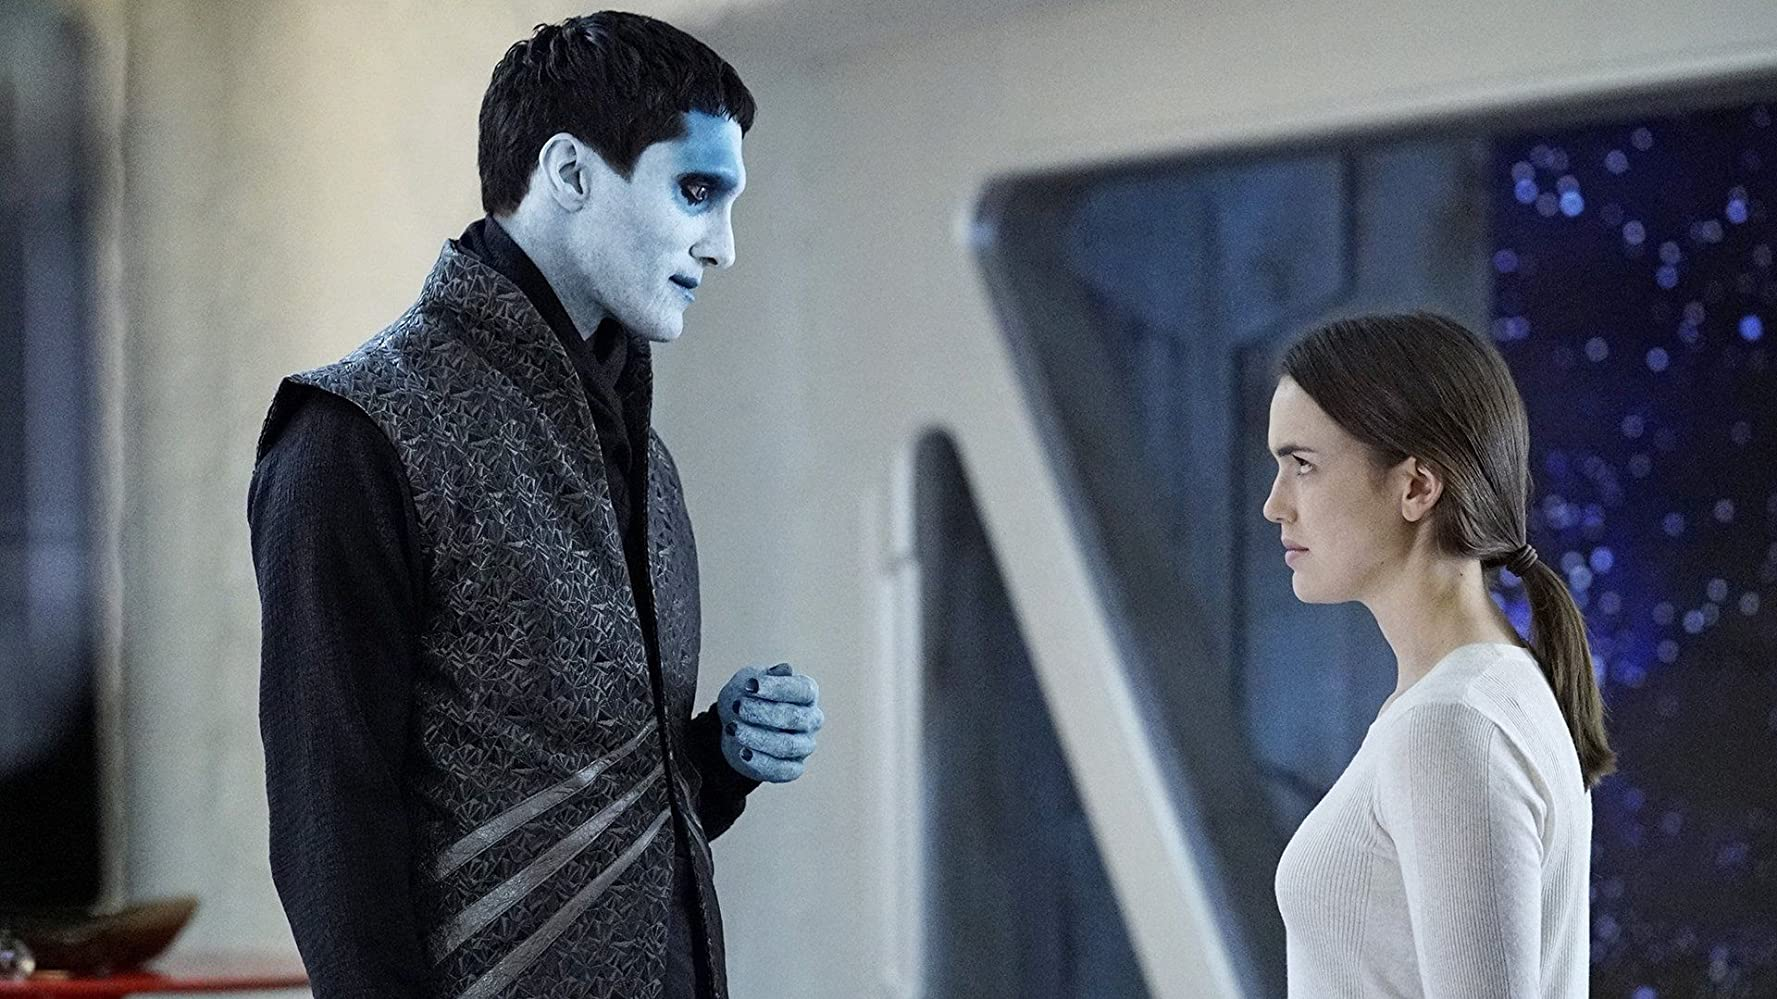 Dominic Rains and Elizabeth Henstridge in Agents of S.H.I.E.L.D. (2013)